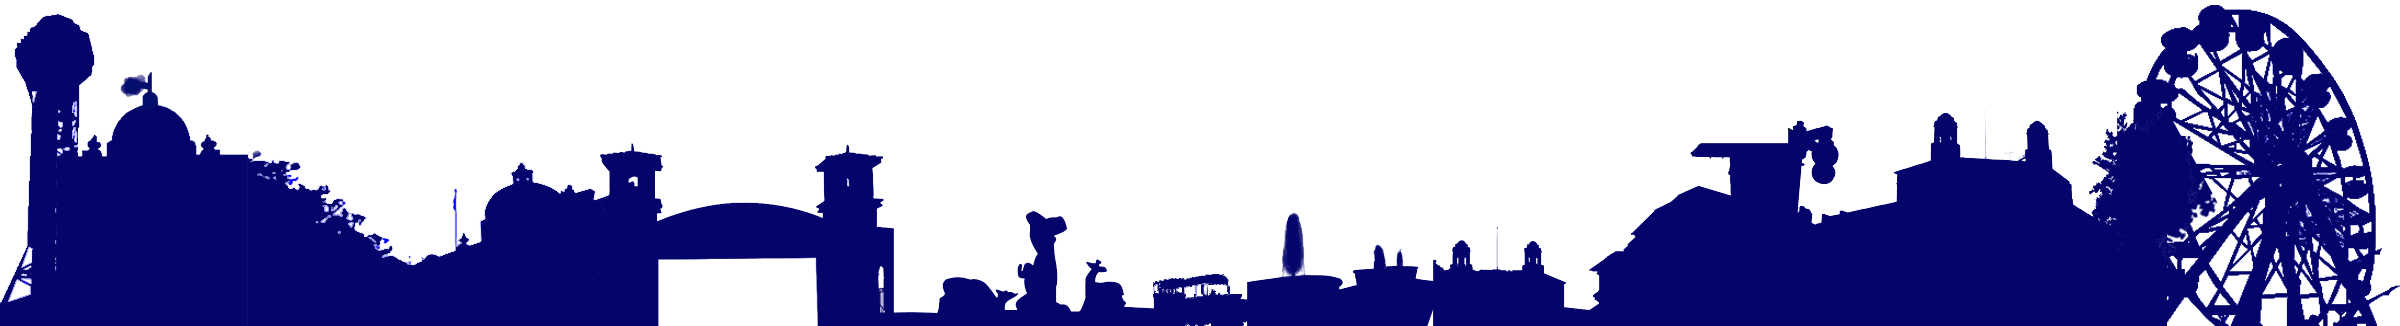 Florida city clipart svg library stock Skyline clipart skyline florida for free download and use images in ... svg library stock